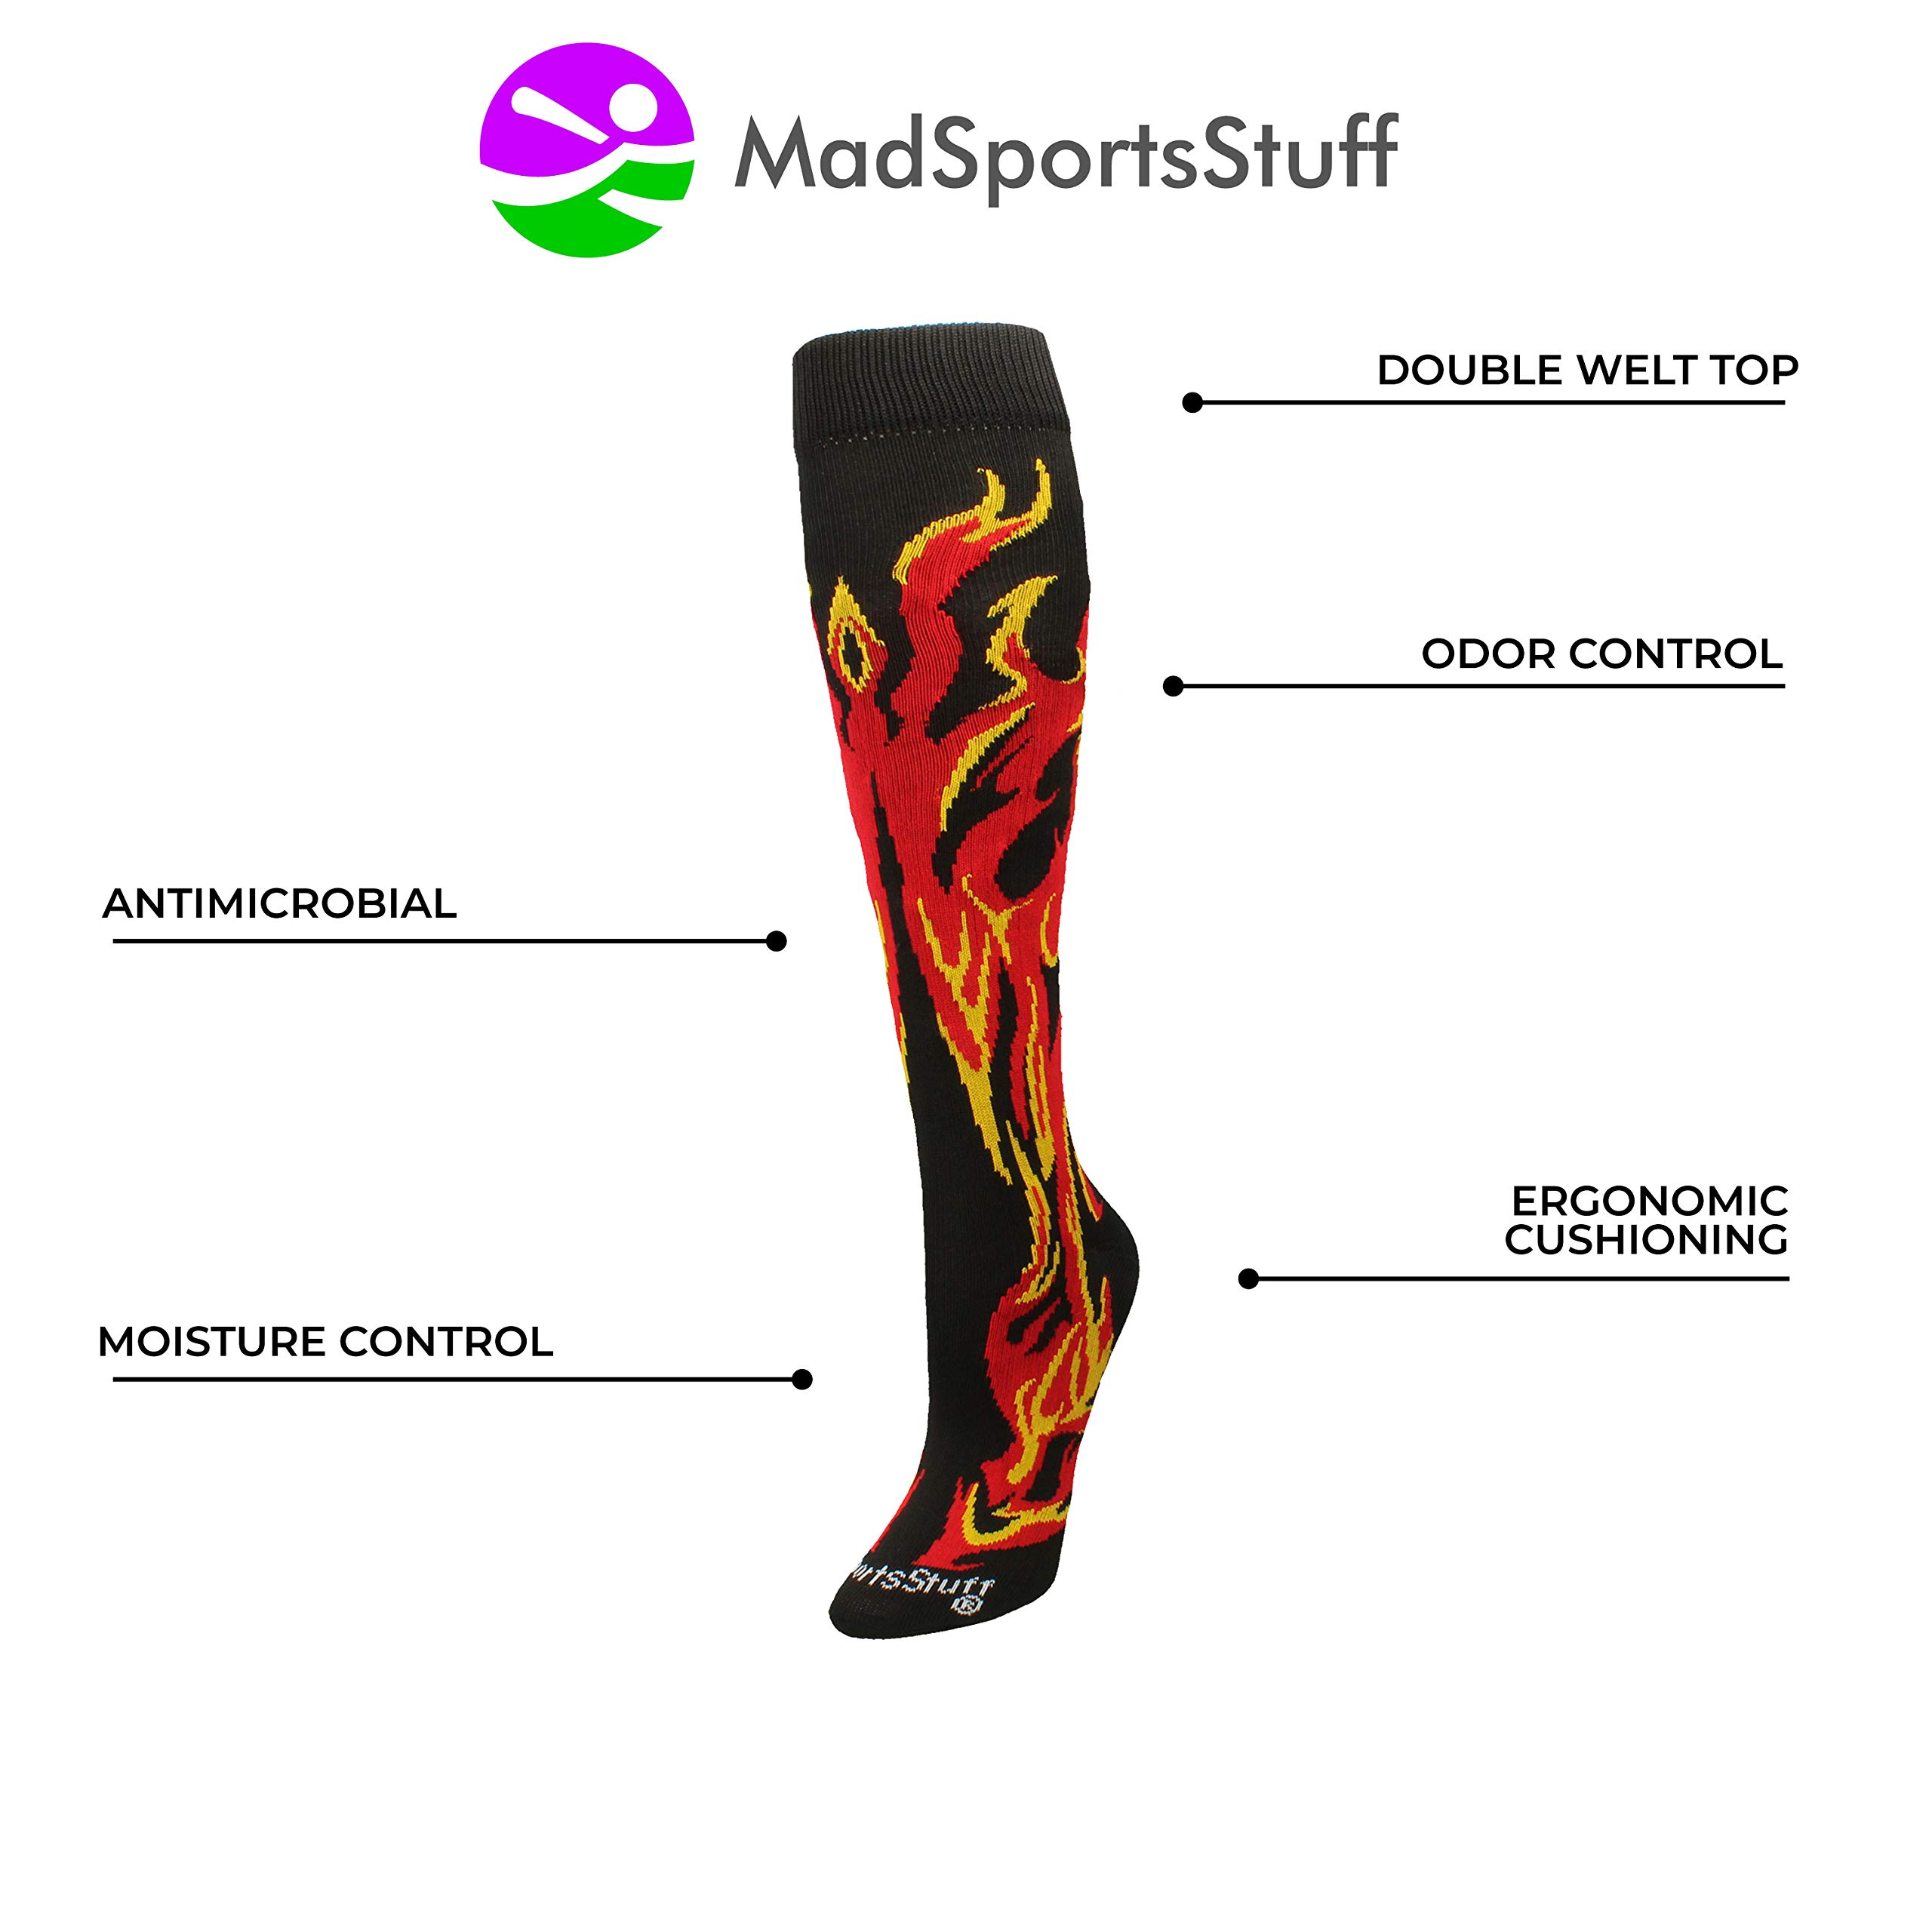 MadSportsStuff Flame Socks Athletic Over The Calf Socks (Black/Red/Gold, Small) by MadSportsStuff (Image #3)